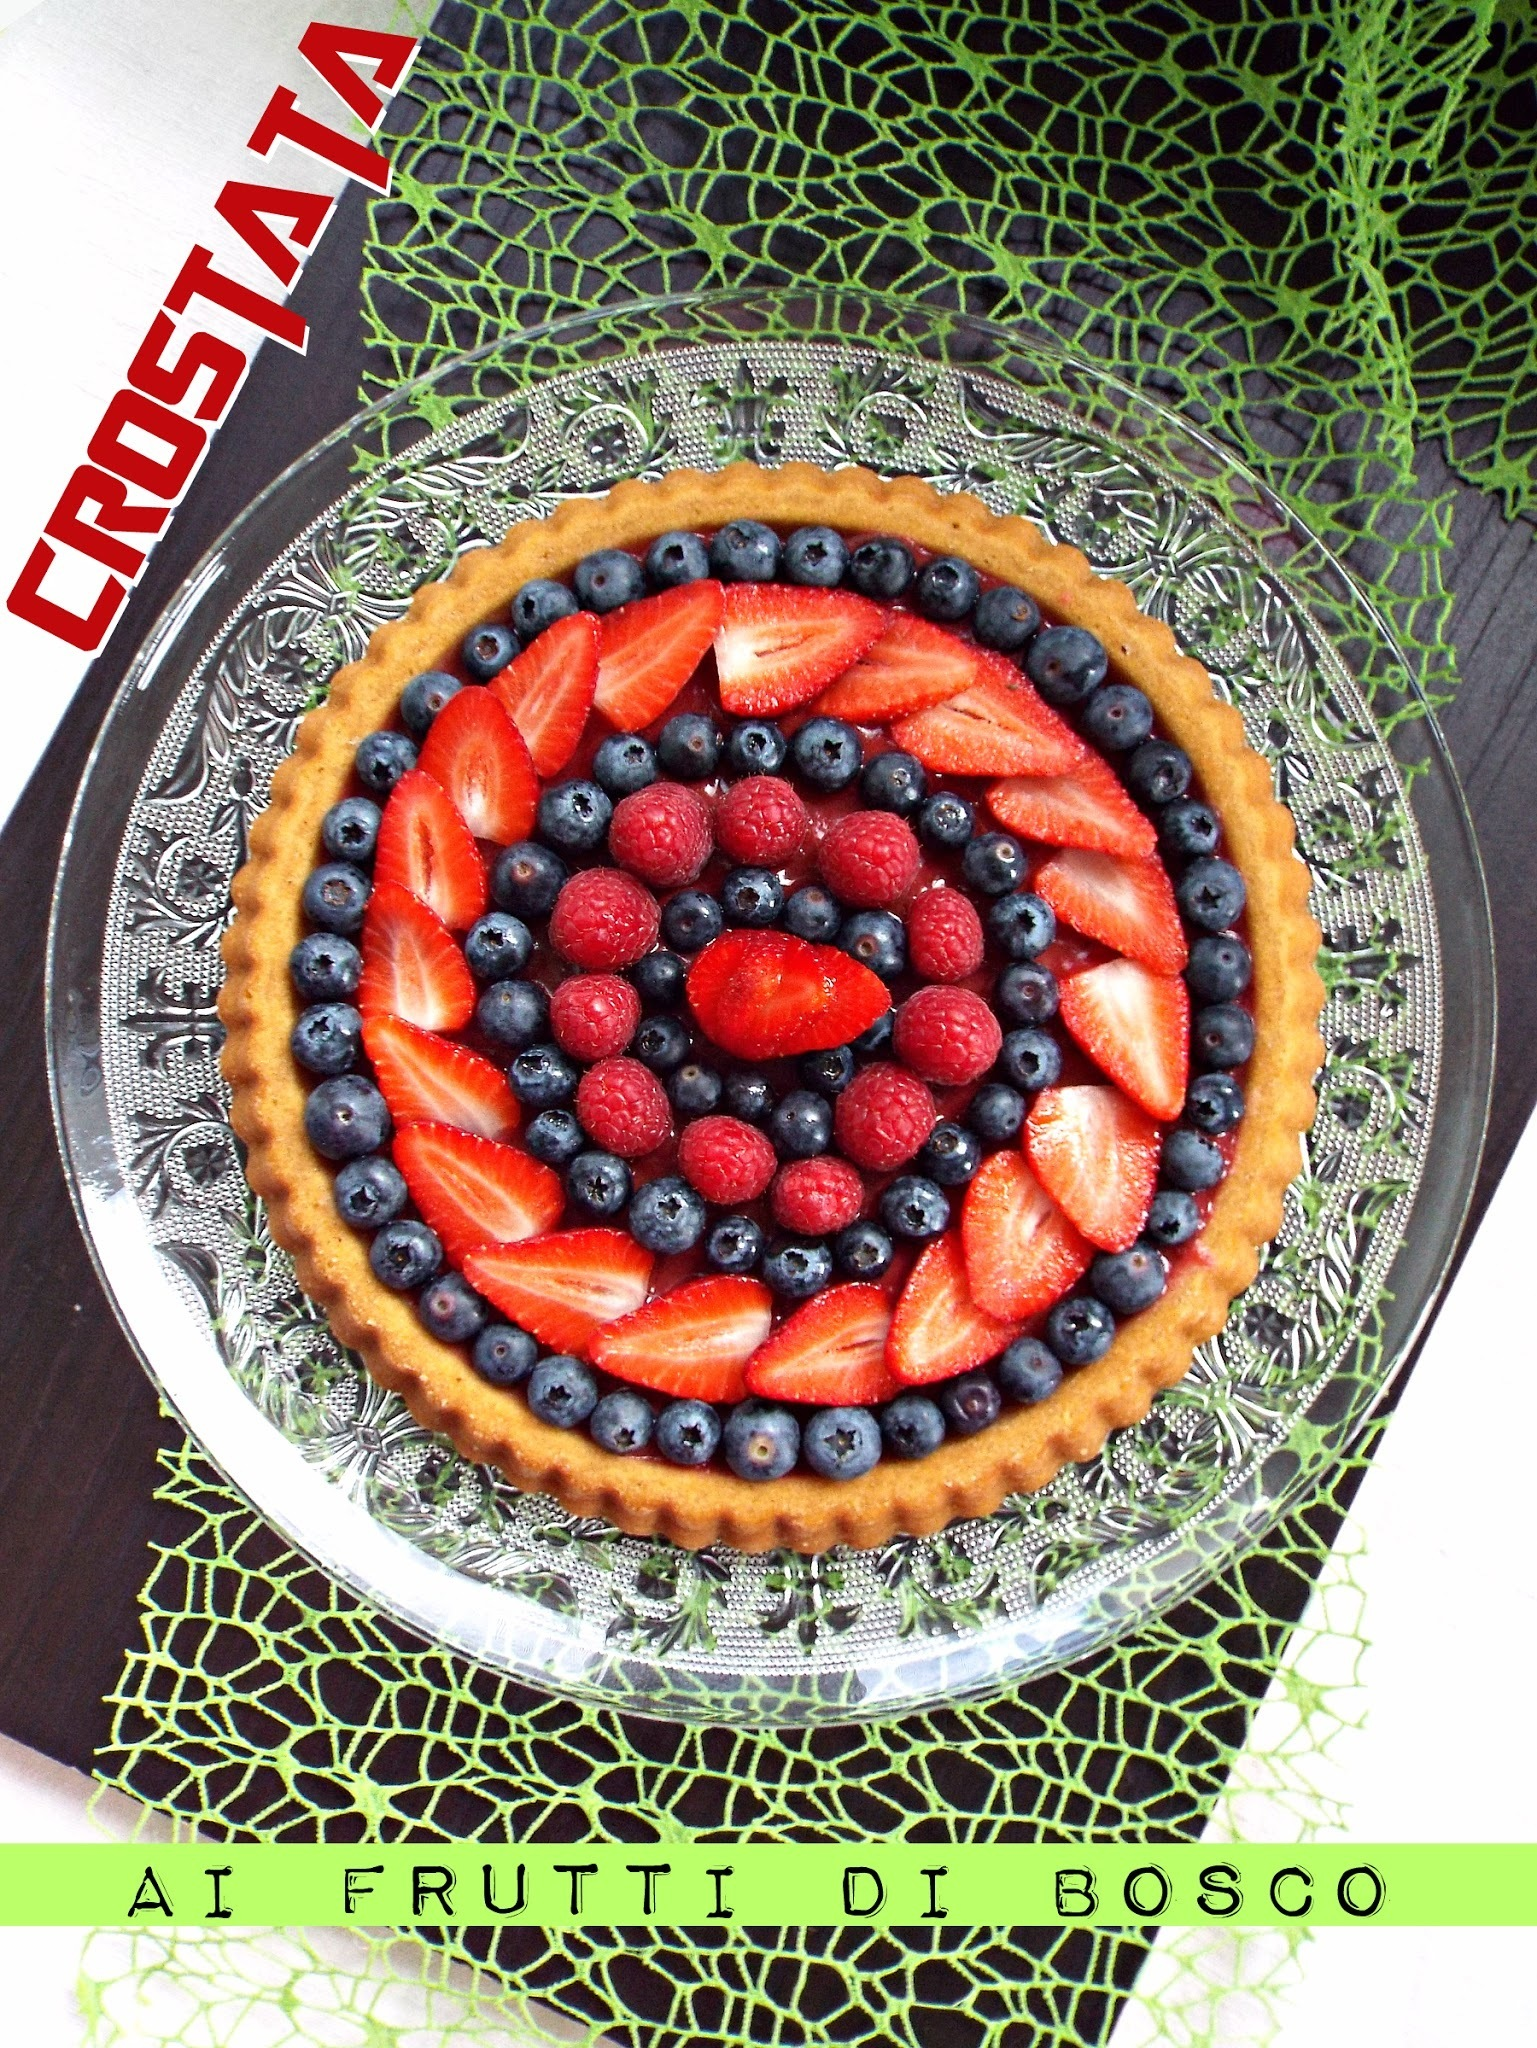 Crostata morbida ai frutti di bosco (vegan recipe)